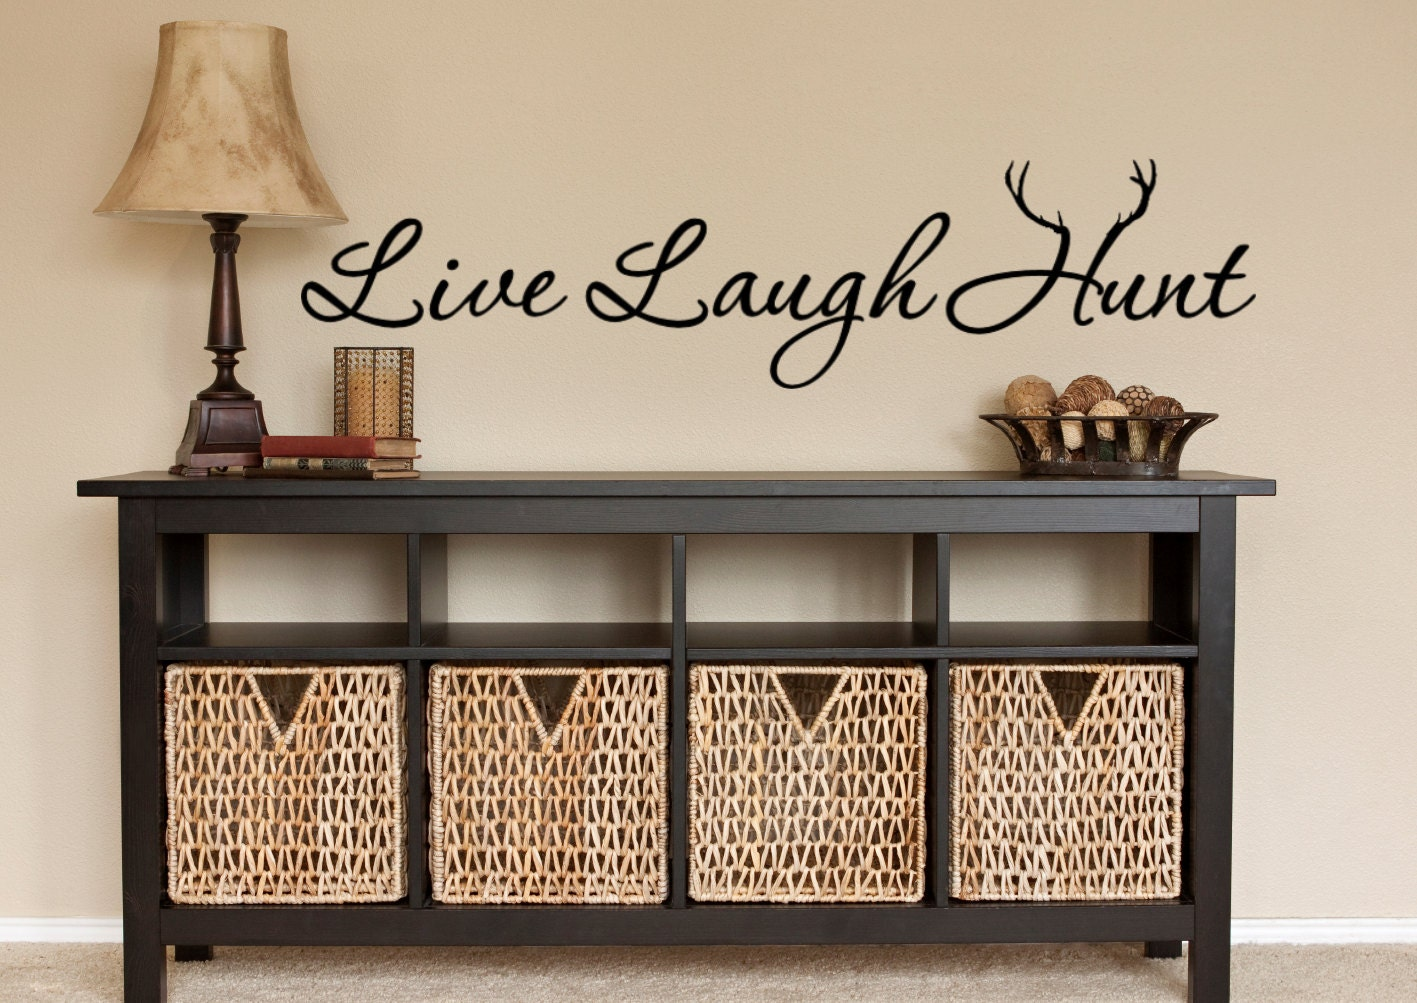 hunting wall decal hunt hunting decor live laugh hunt zoom